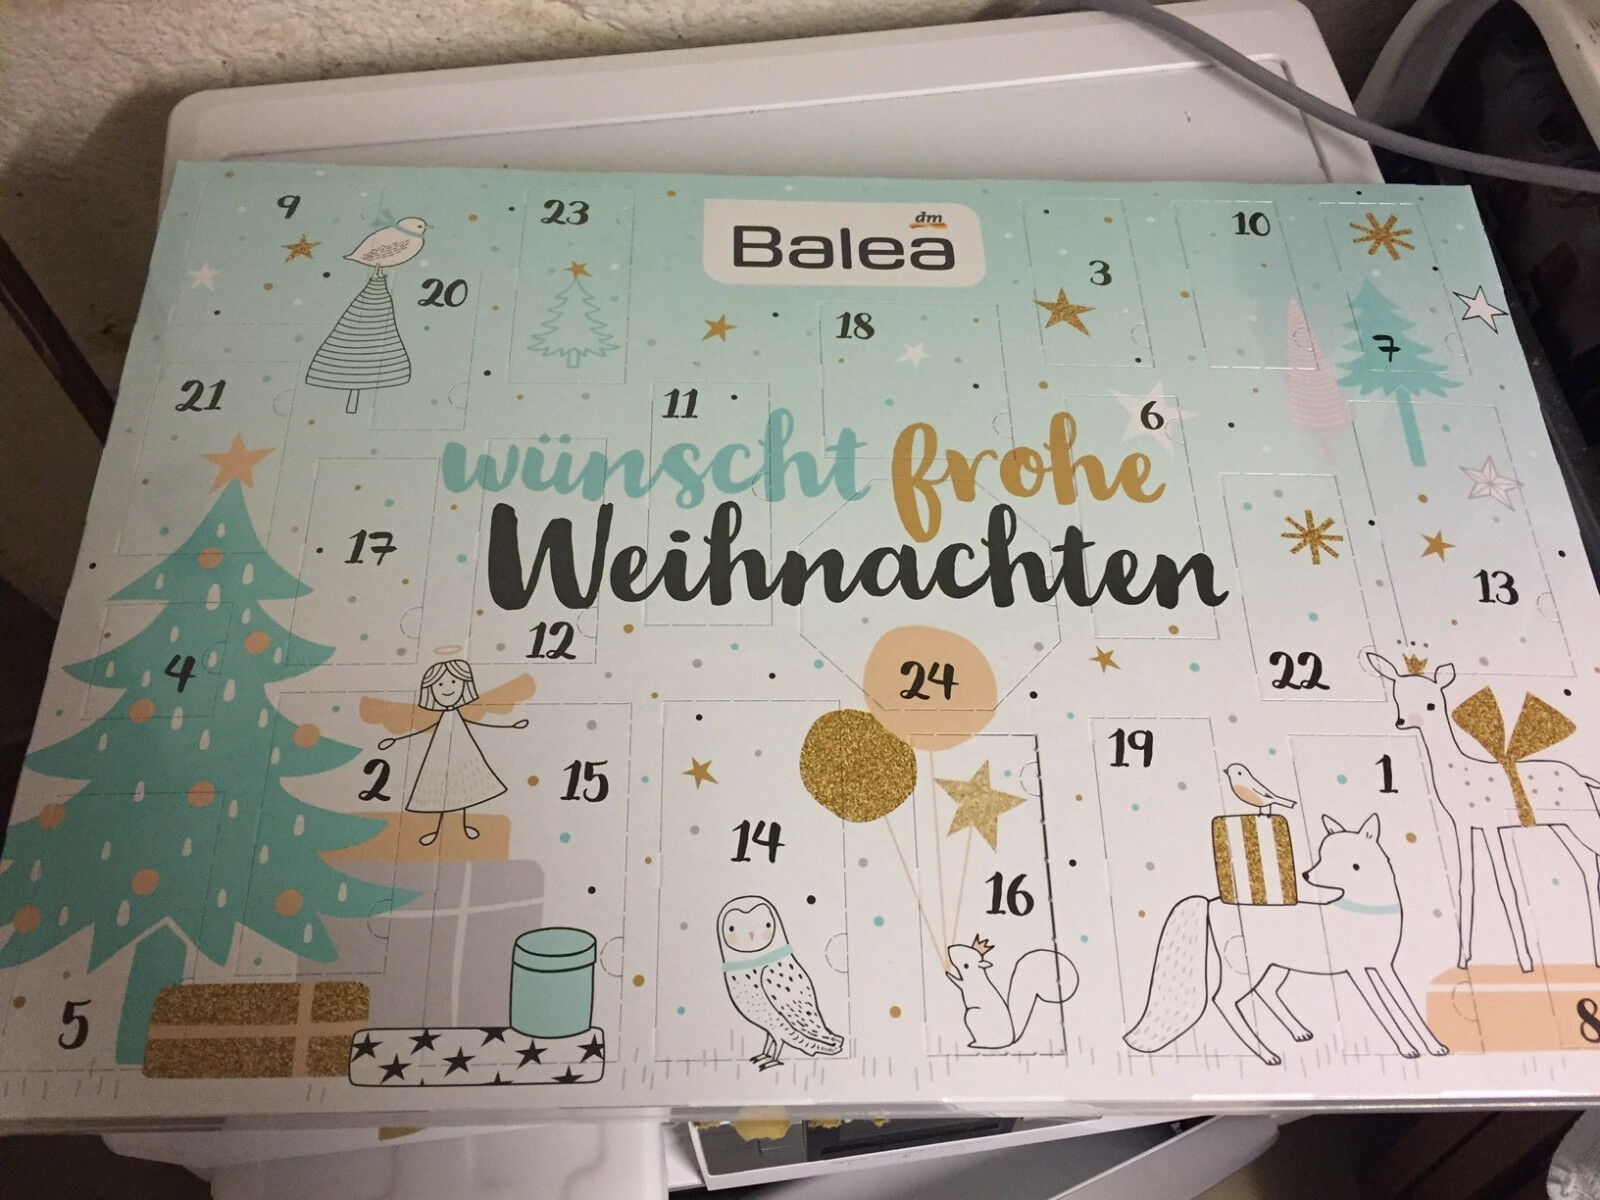 balea adventskalender 2017 beauty kalender advent geschenk weihnachten damen eur 25 00. Black Bedroom Furniture Sets. Home Design Ideas